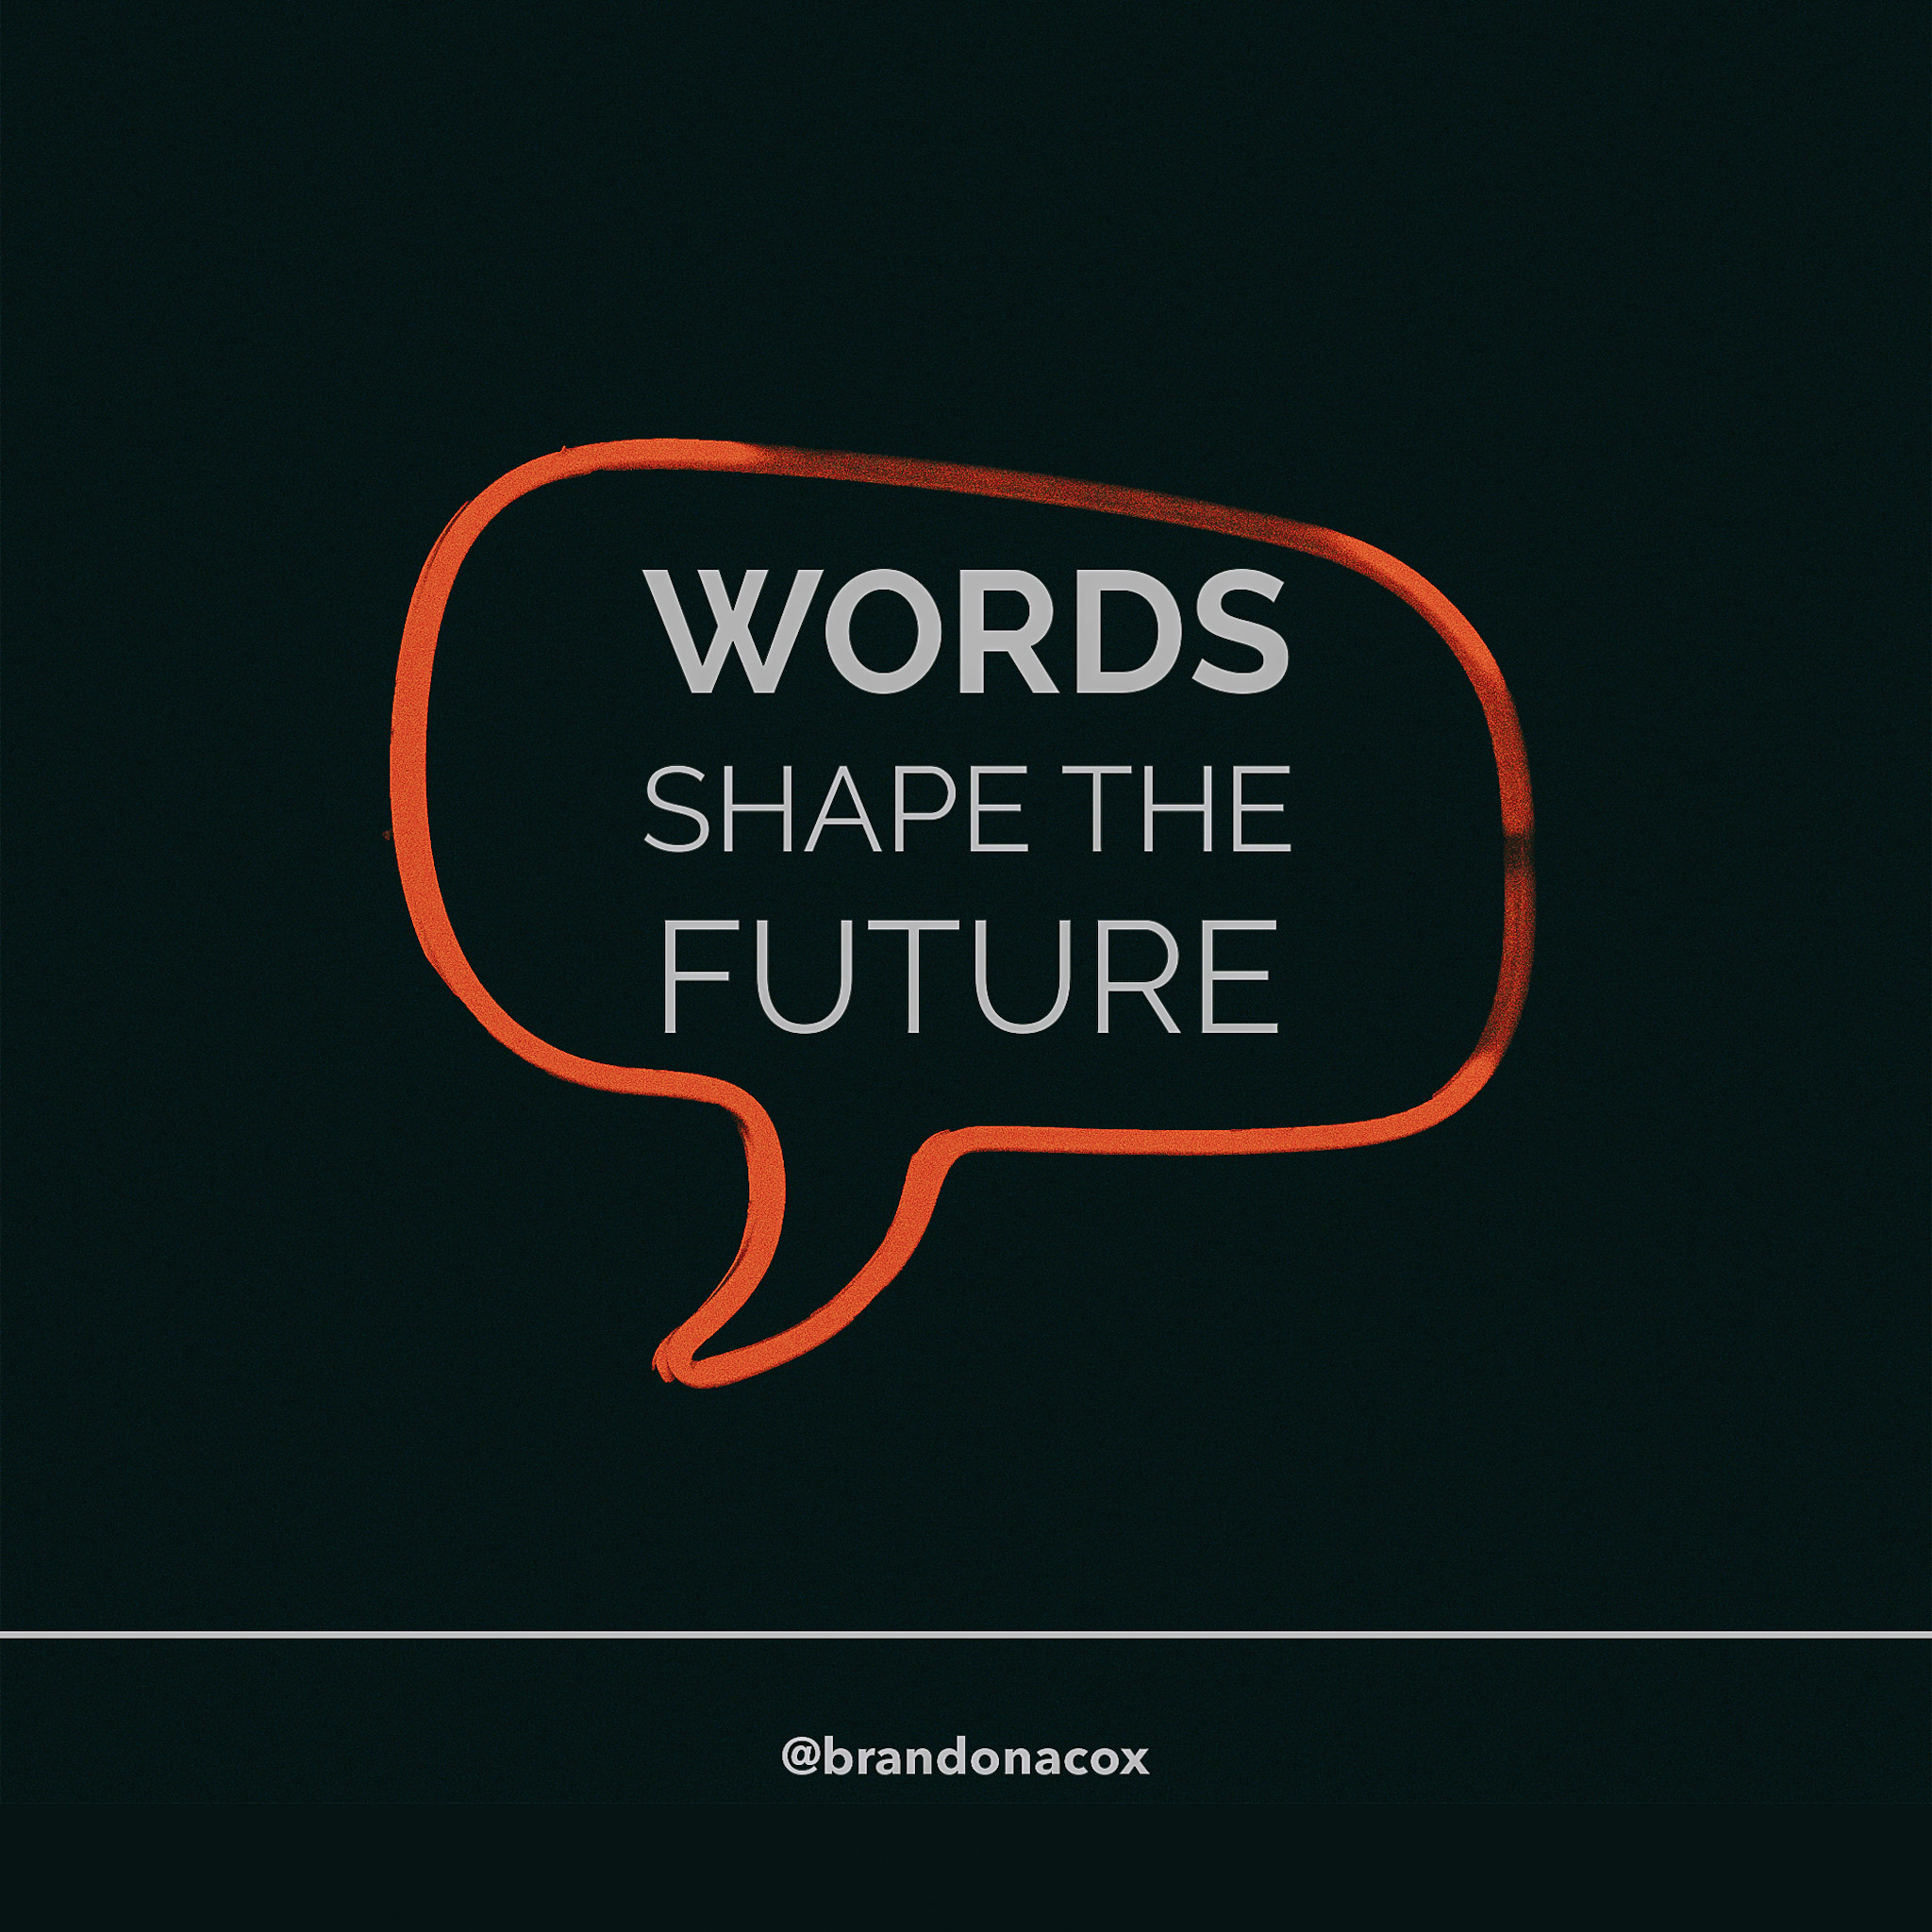 Words Shape the Future